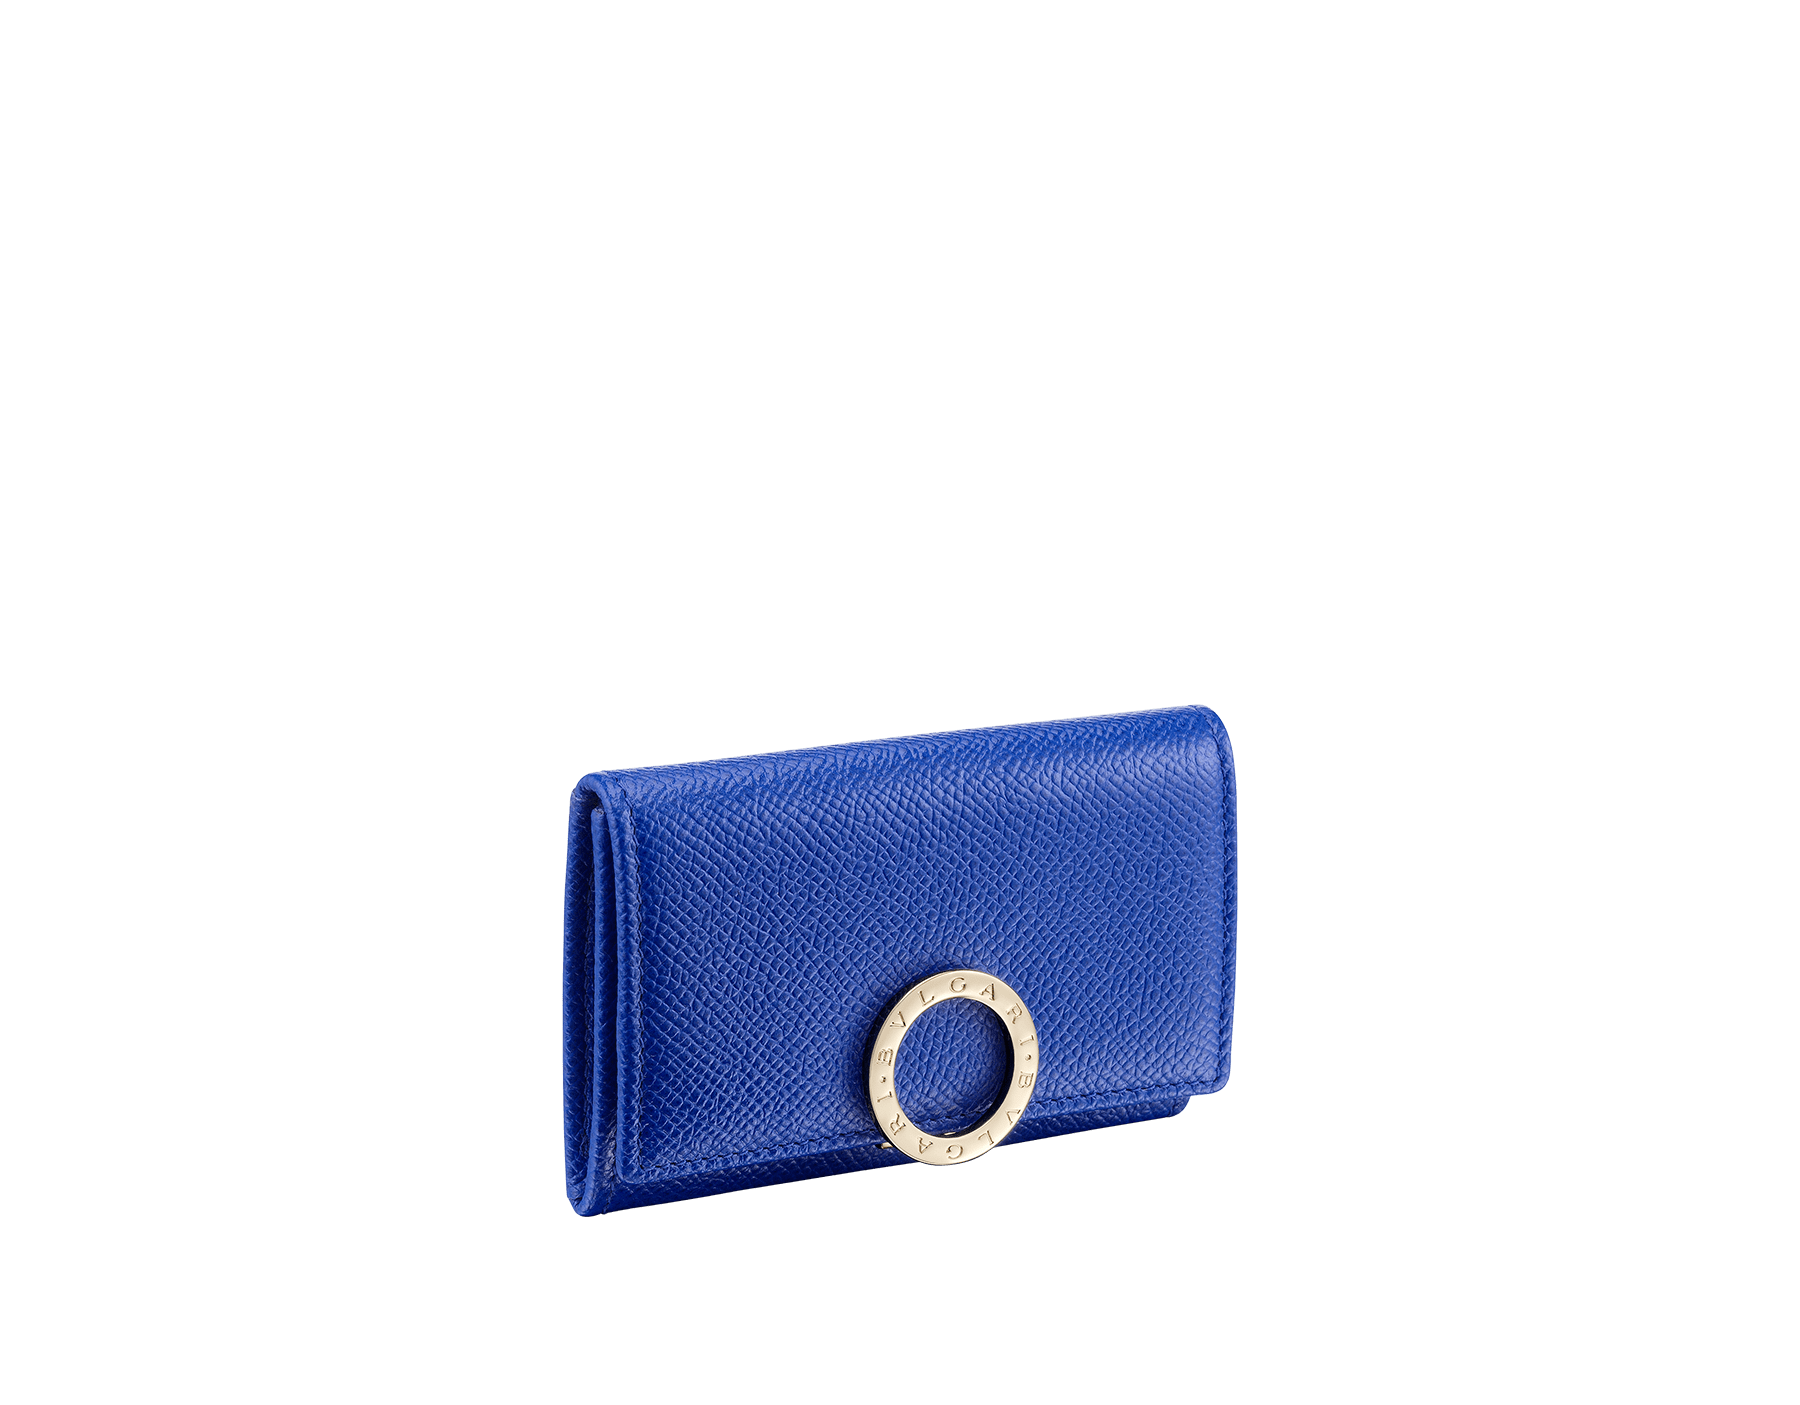 BVLGARI BVLGARI coin purse in cobalt tourmaline grain calf leather and aster amethyst nappa leather. Iconic logo closure clip in light gold plated brass 579-WLT-S-RECT image 1